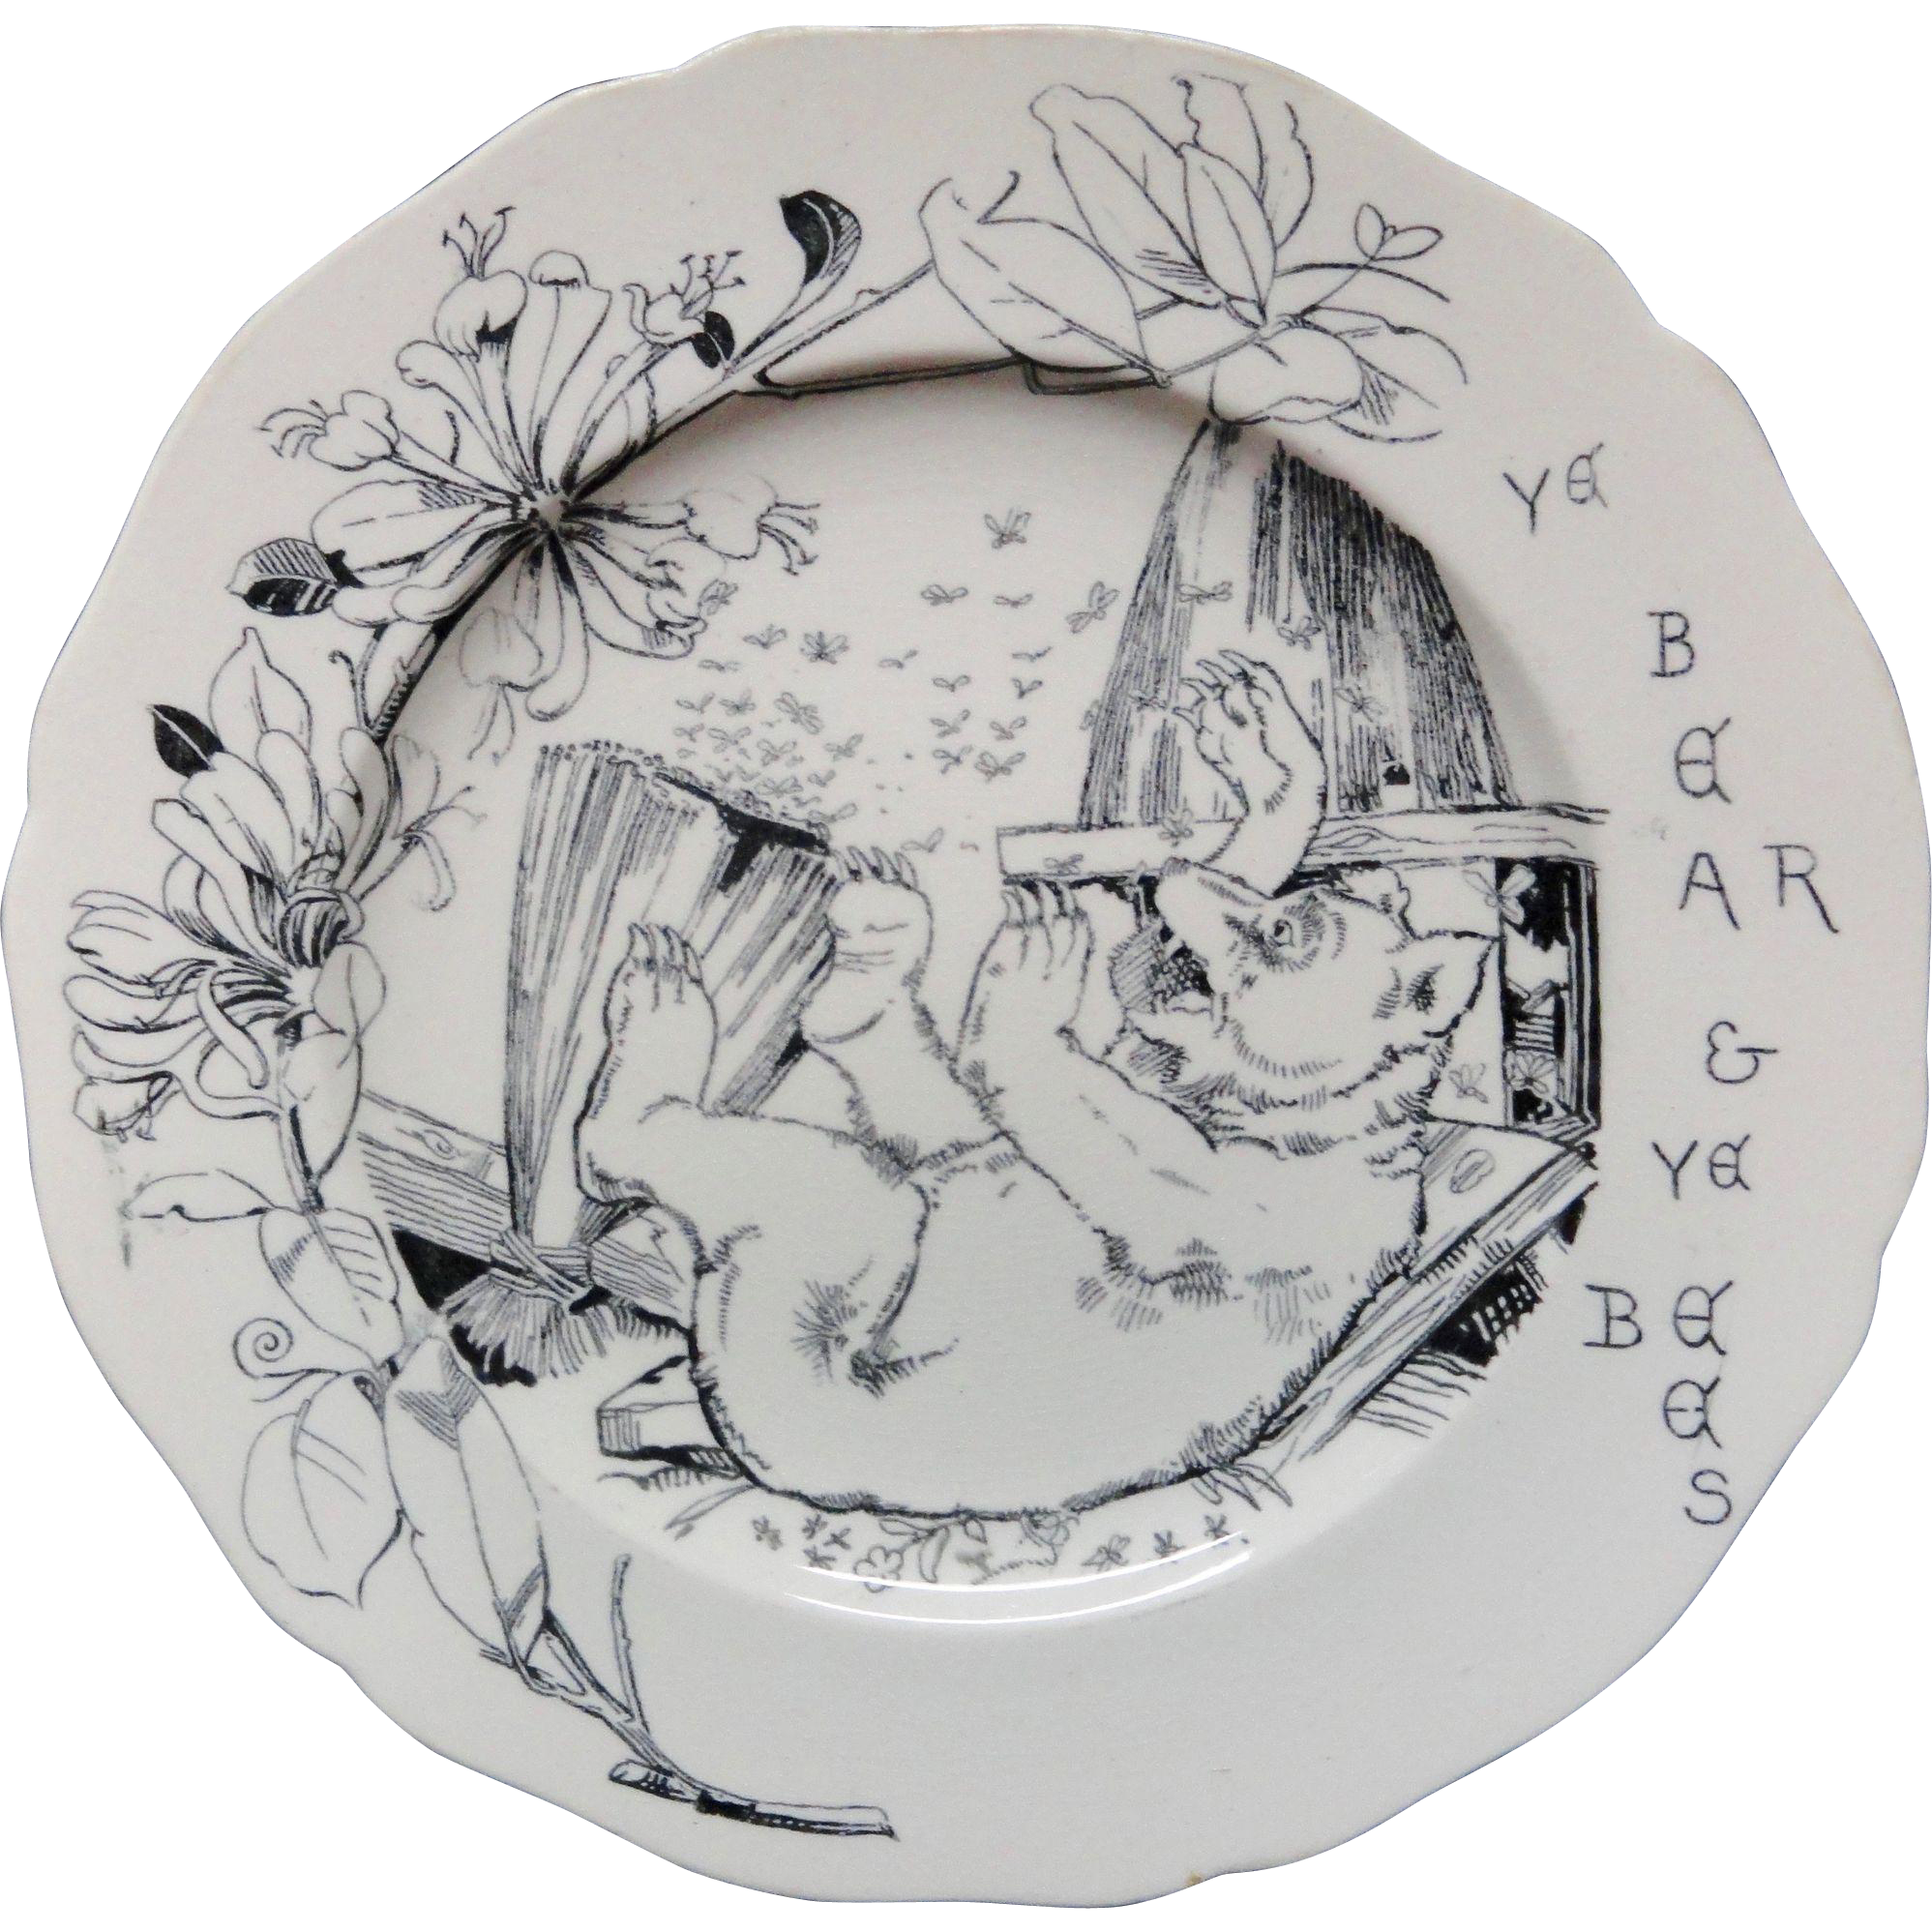 1870 Aesop's Fables BEAR BEES Copeland Plate